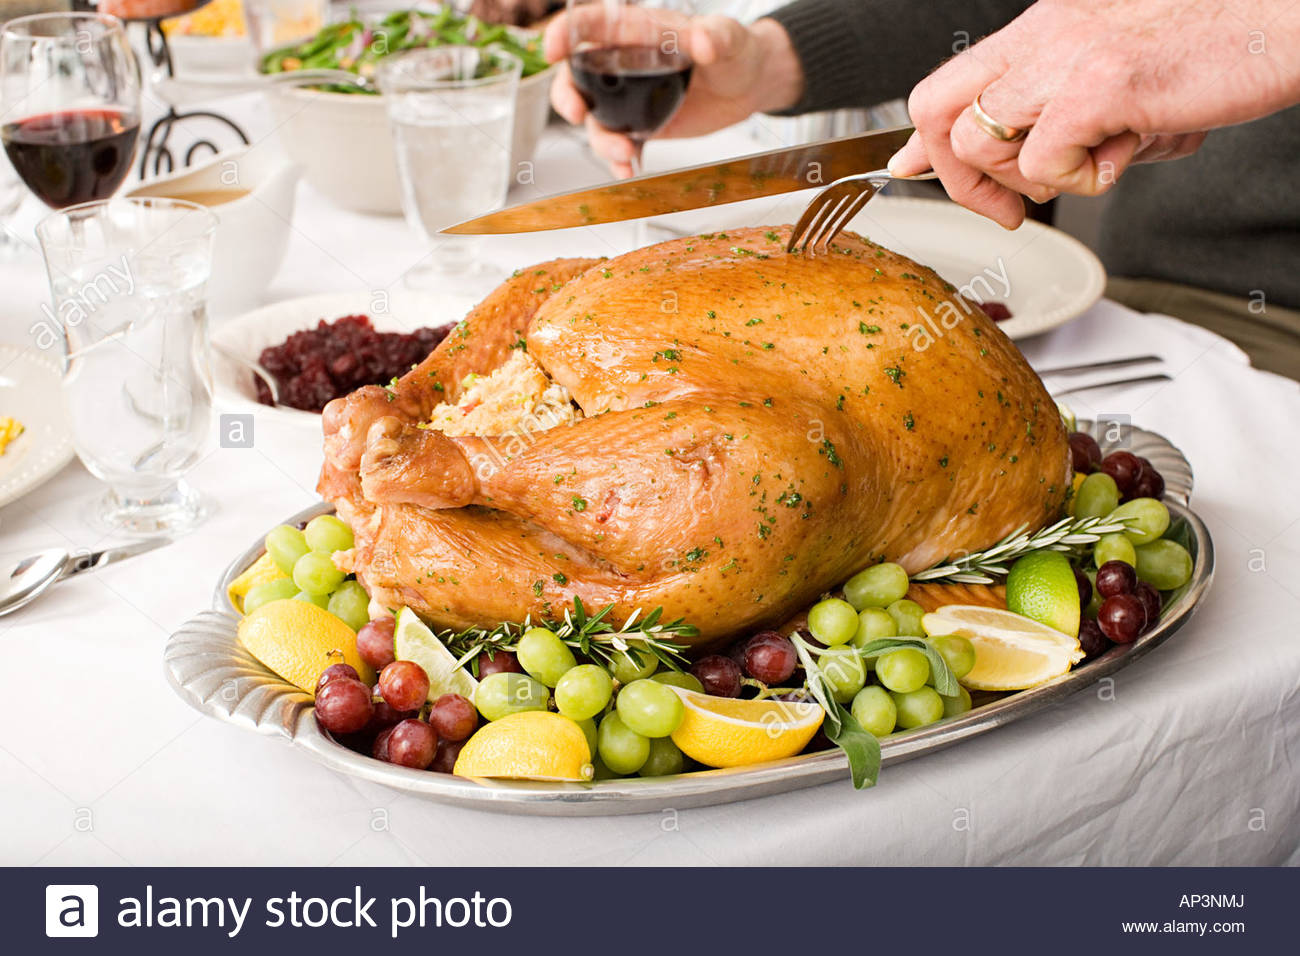 Person carving turkey - Stock Image